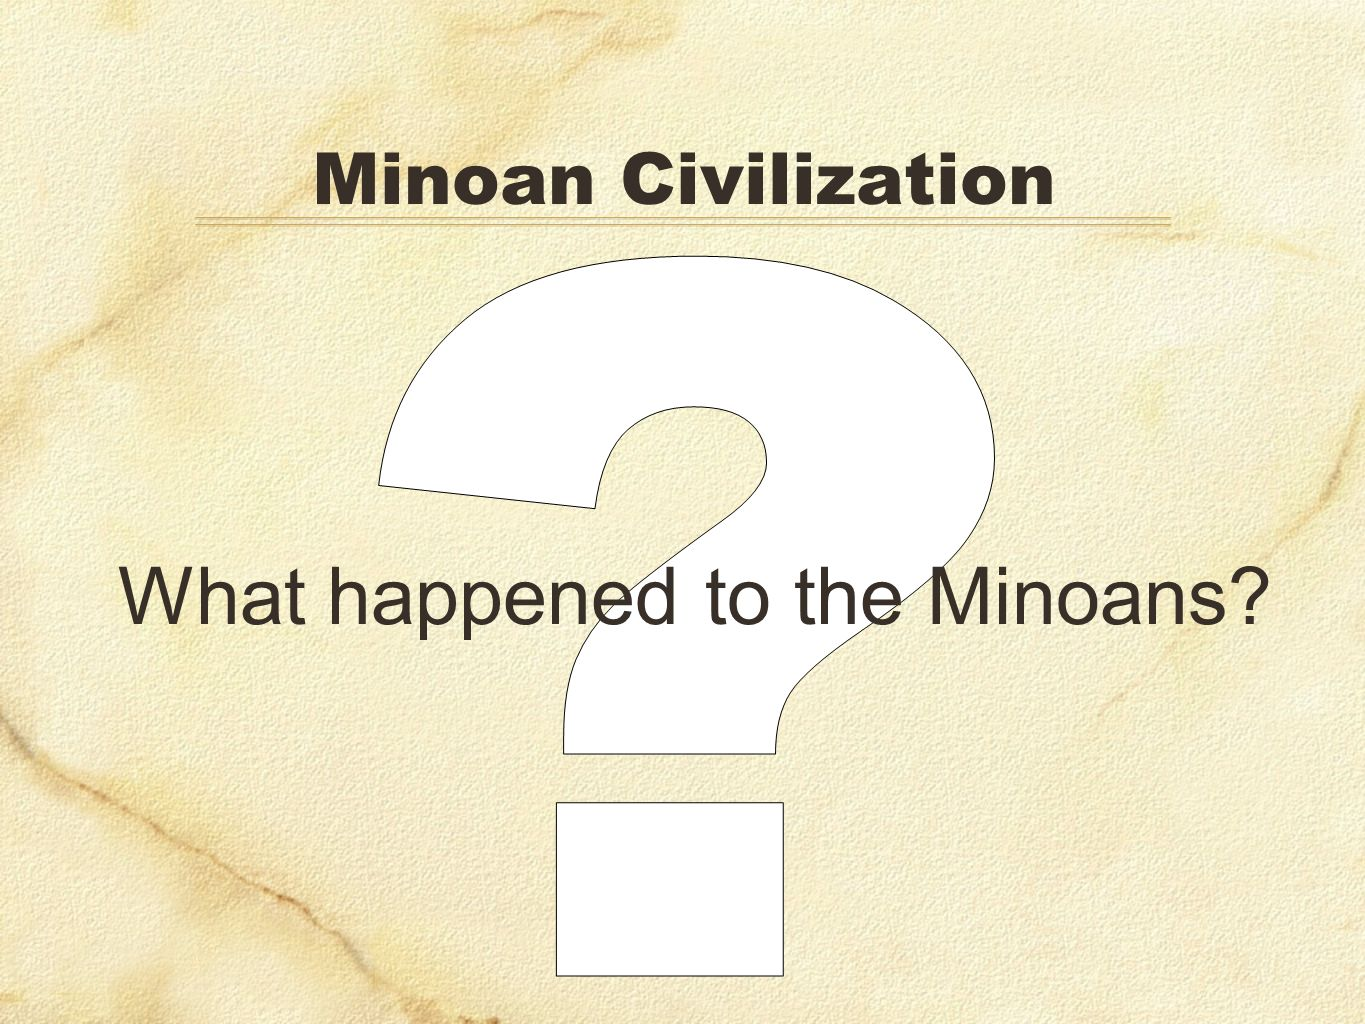 Minoan Civilization What happened to the Minoans?